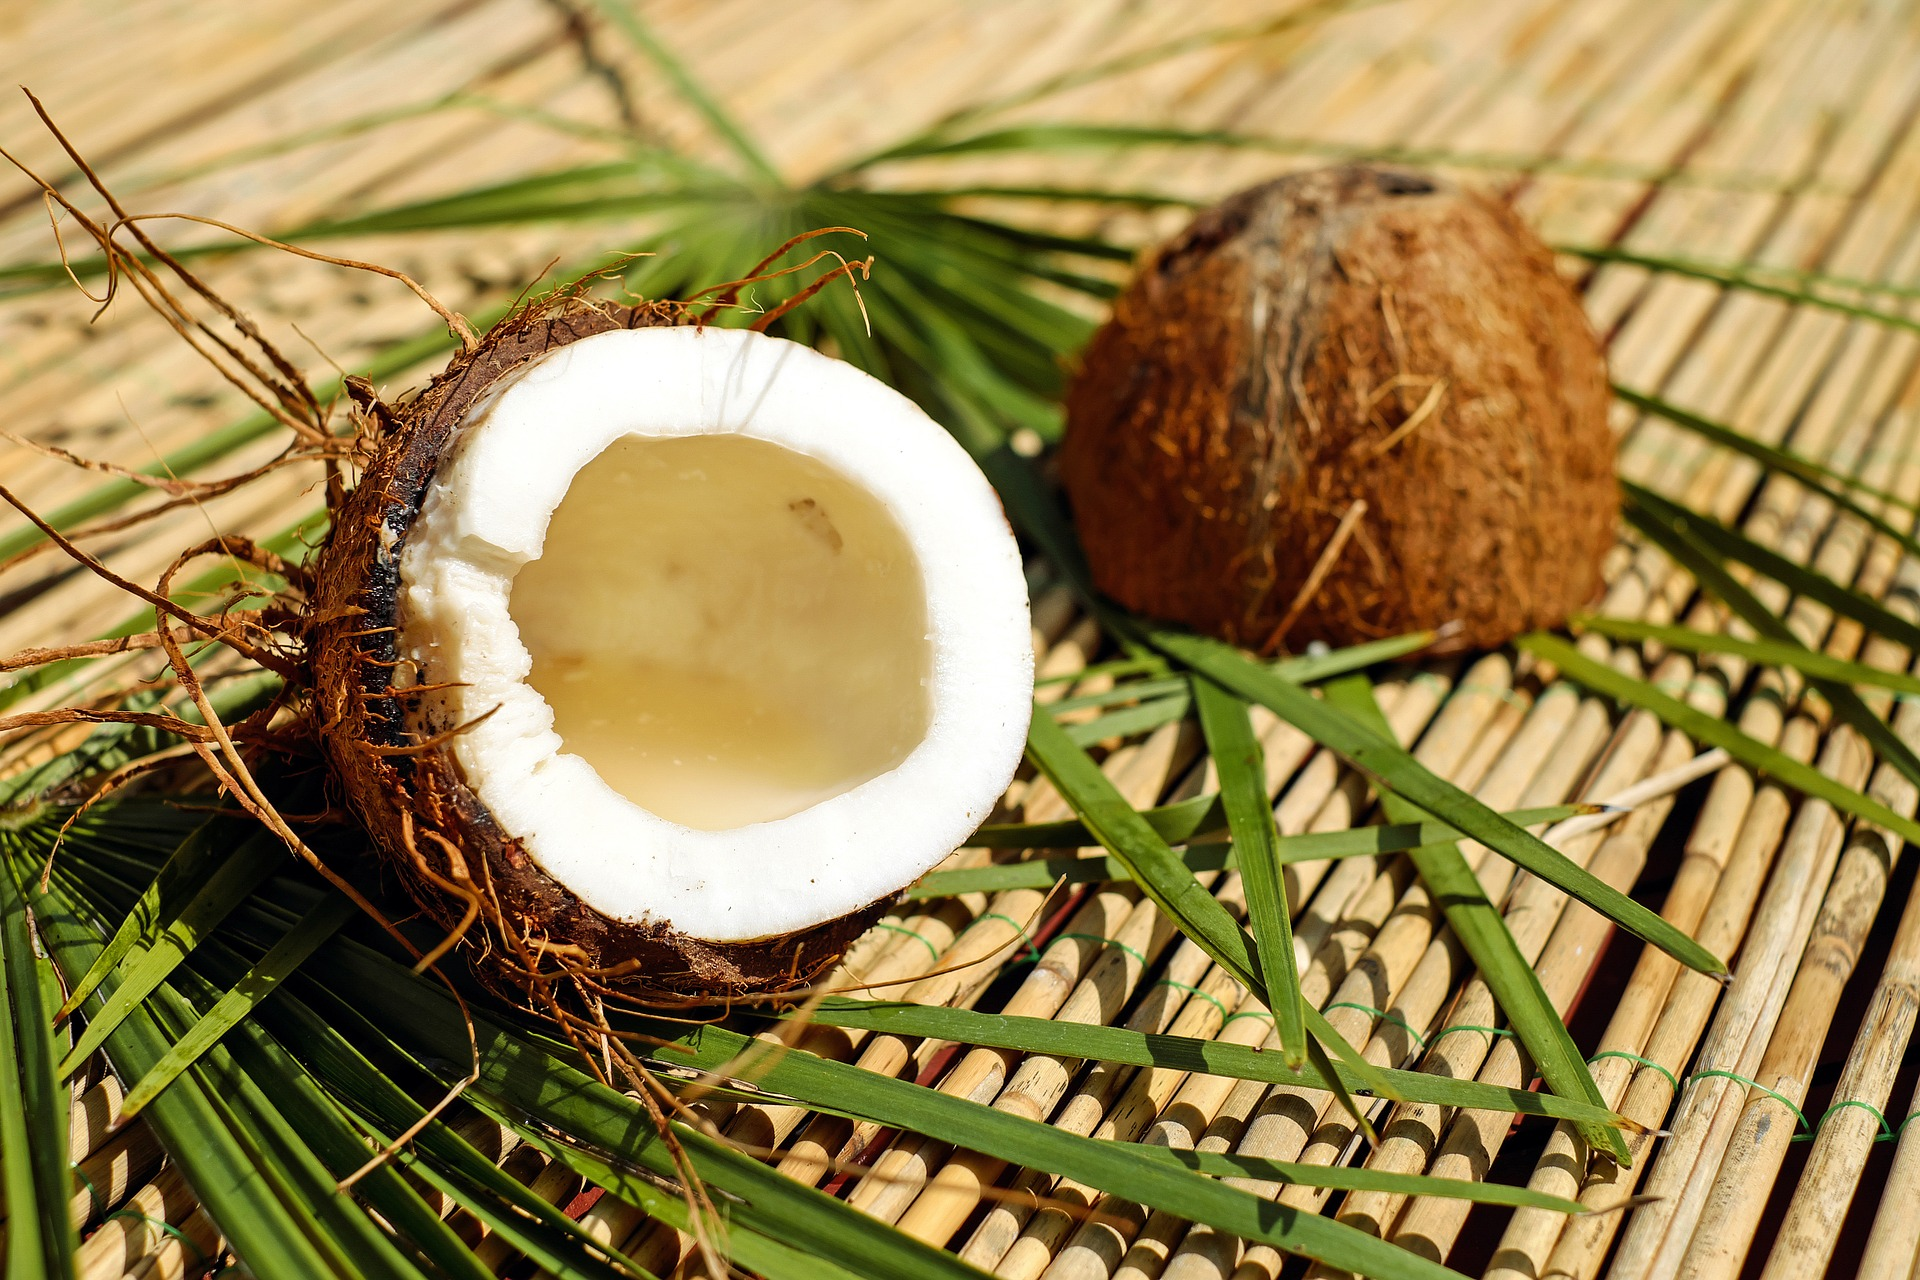 Coconut water in skincare: Benefits and how to use